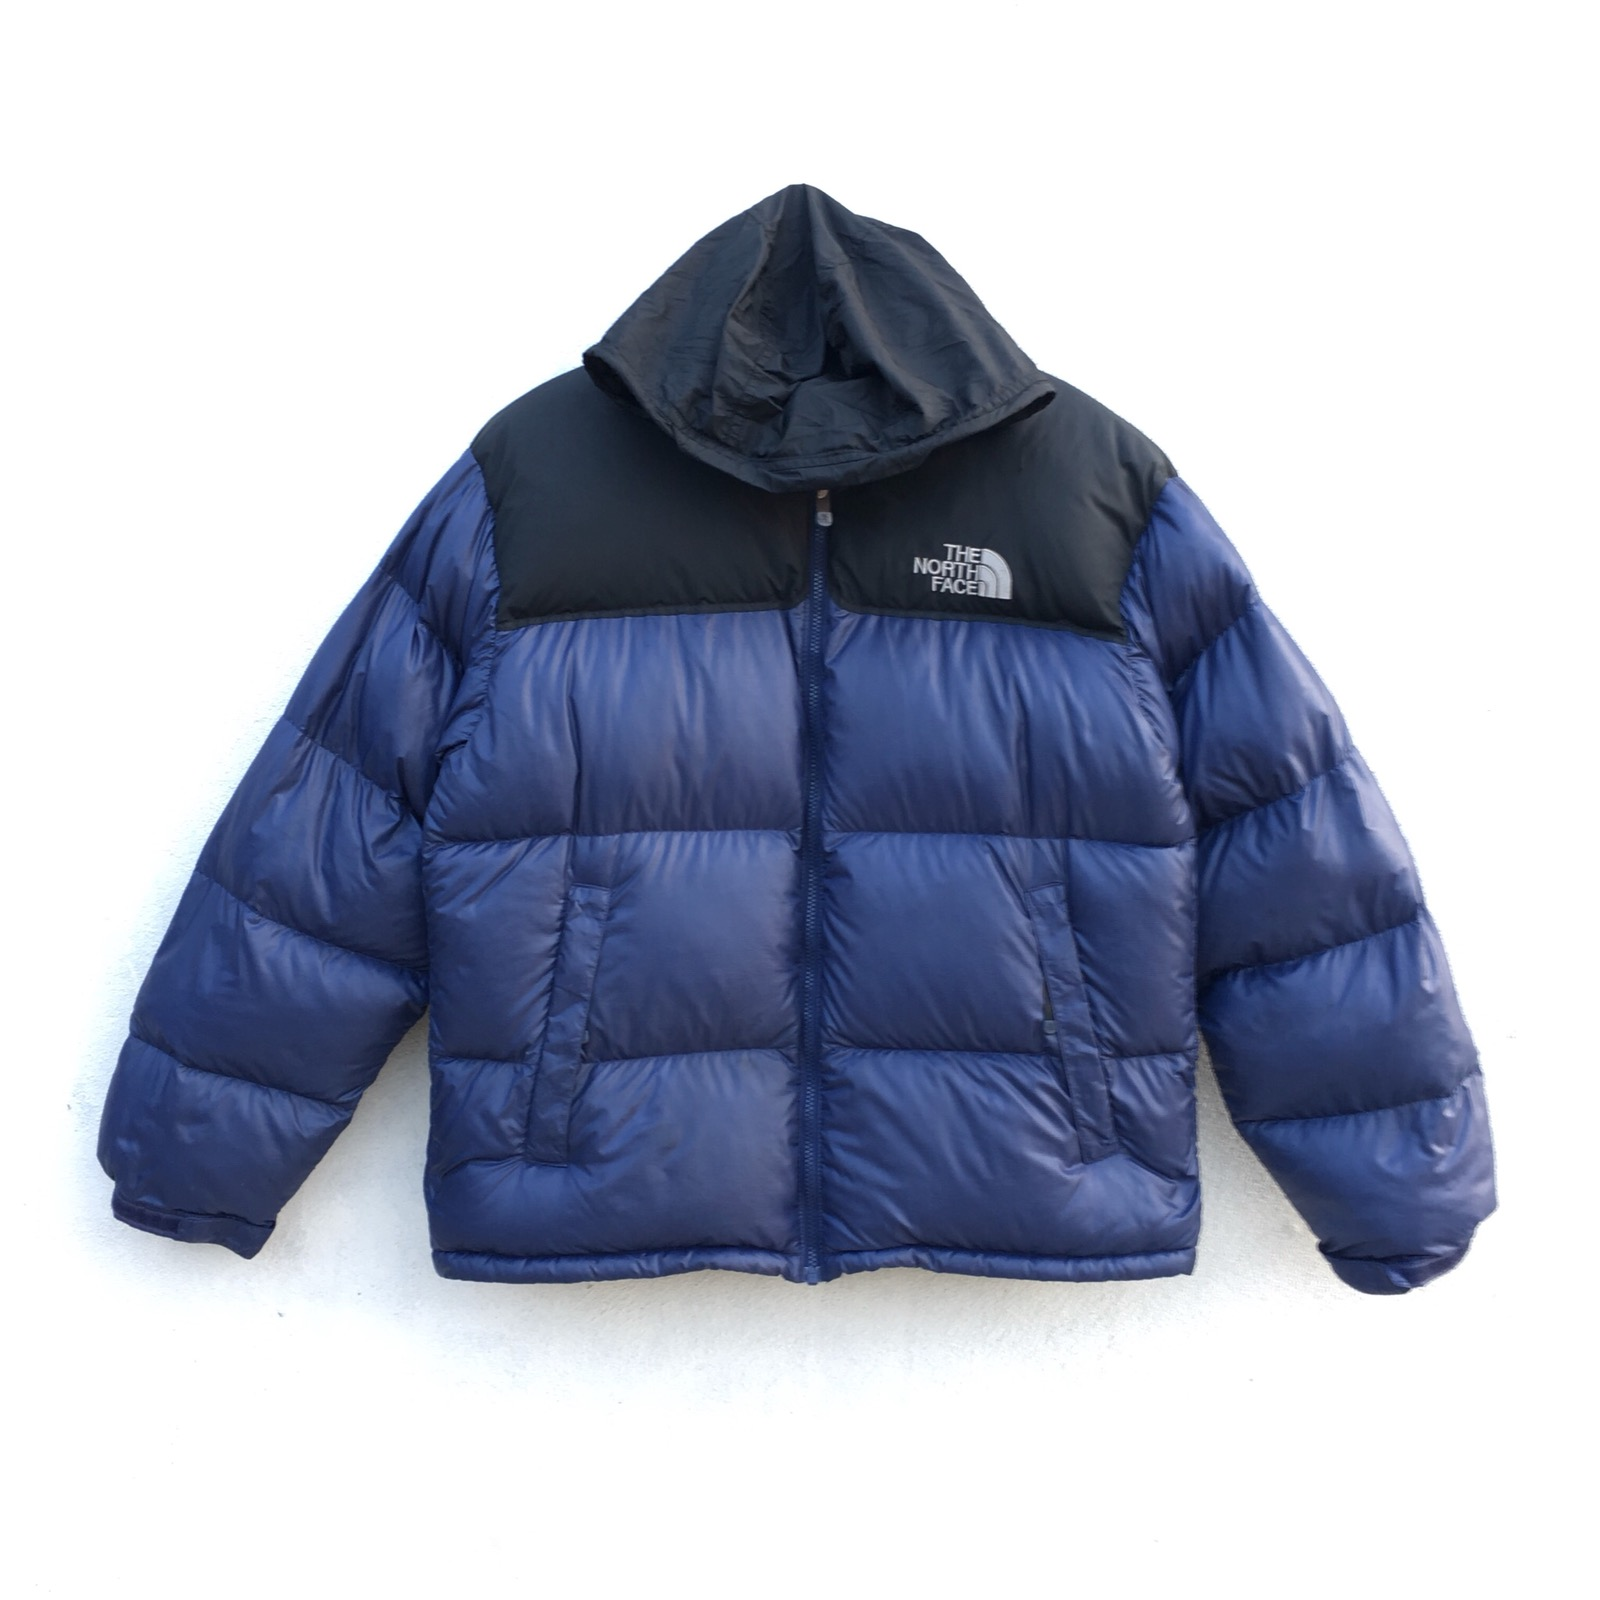 The North Face  Last Drop  The North Face Nuptse 700 Down Reversible Puffer  Hidden Hooded Jacket Size m - Light Jackets for Sale - Grailed 9d285f636